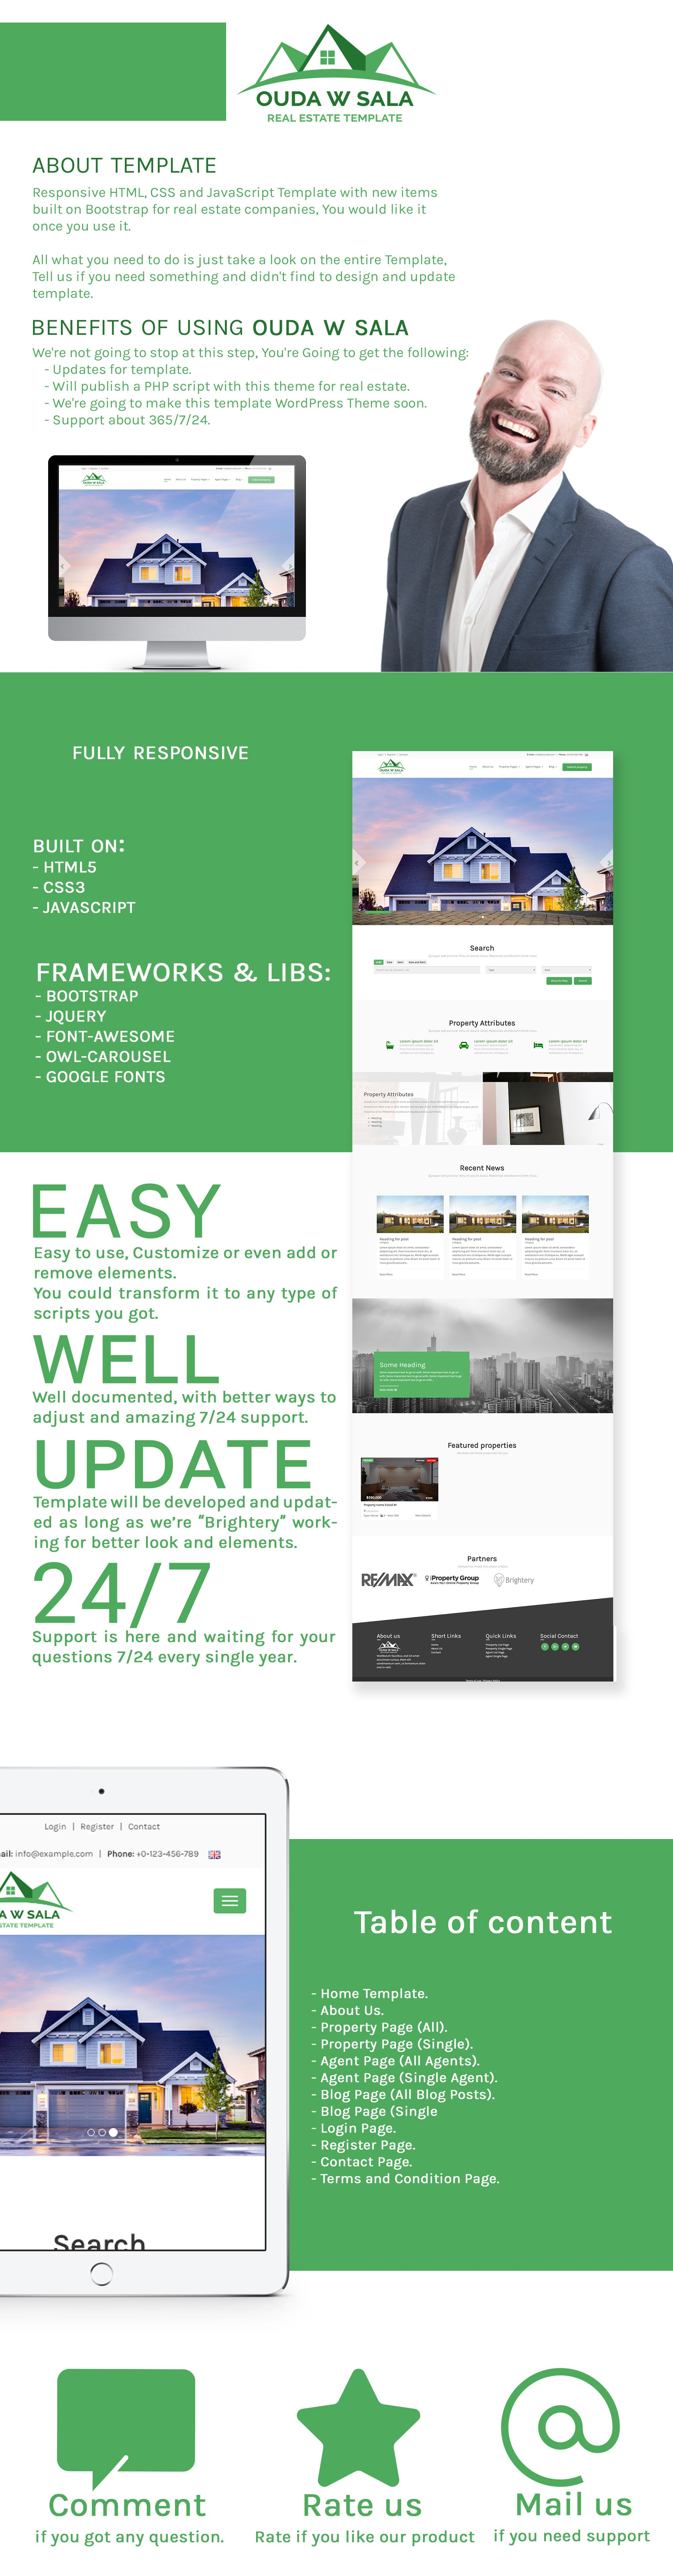 Ouda W Sala - HTML Real Estate Template Screenshot 4